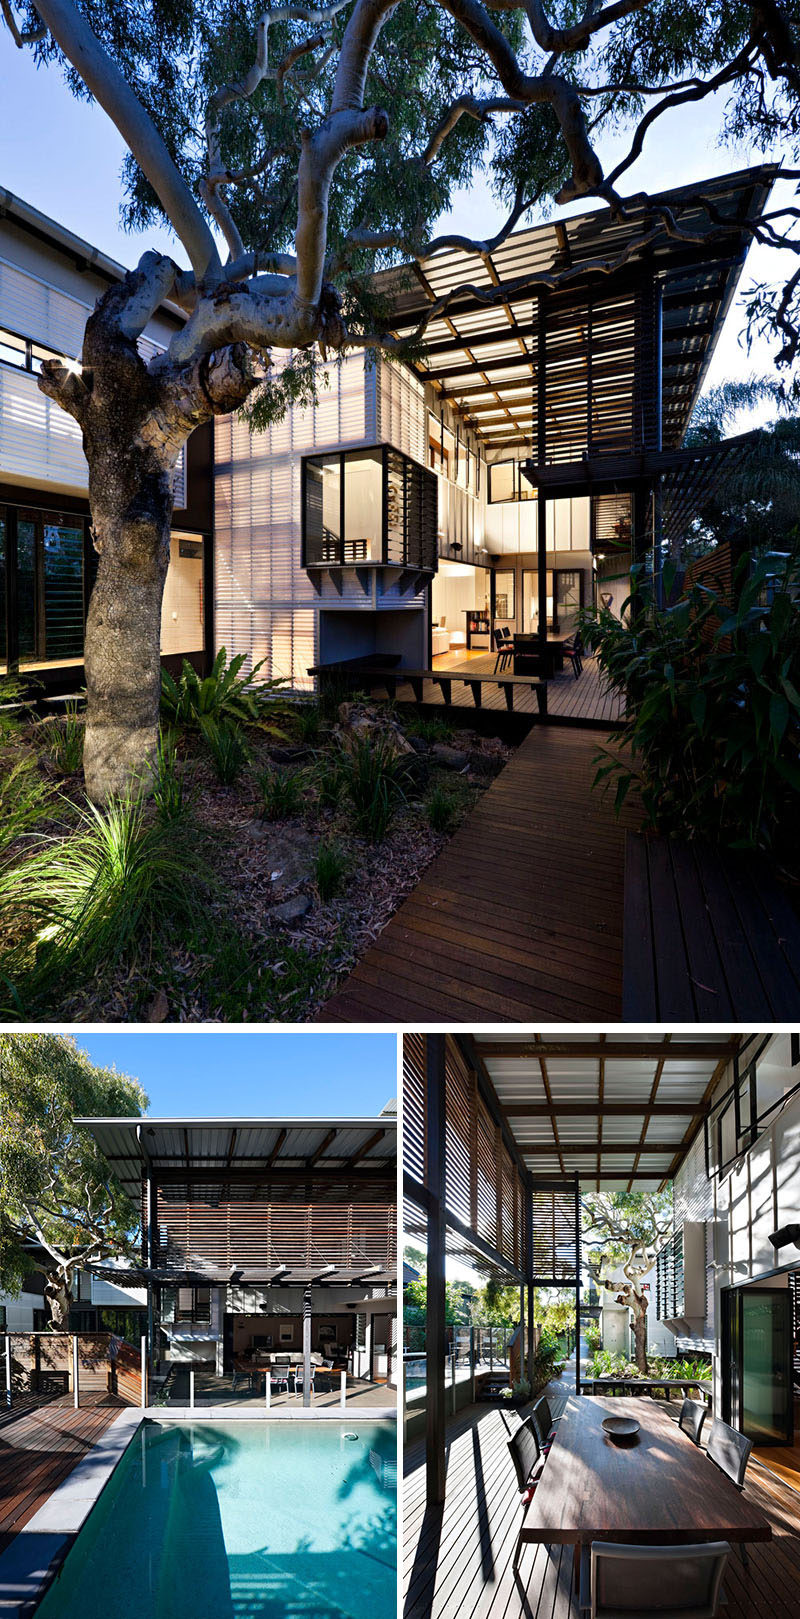 23 Awesome Australian Homes To Inspire Your Dreams Of ... on Aust Outdoor Living  id=58855